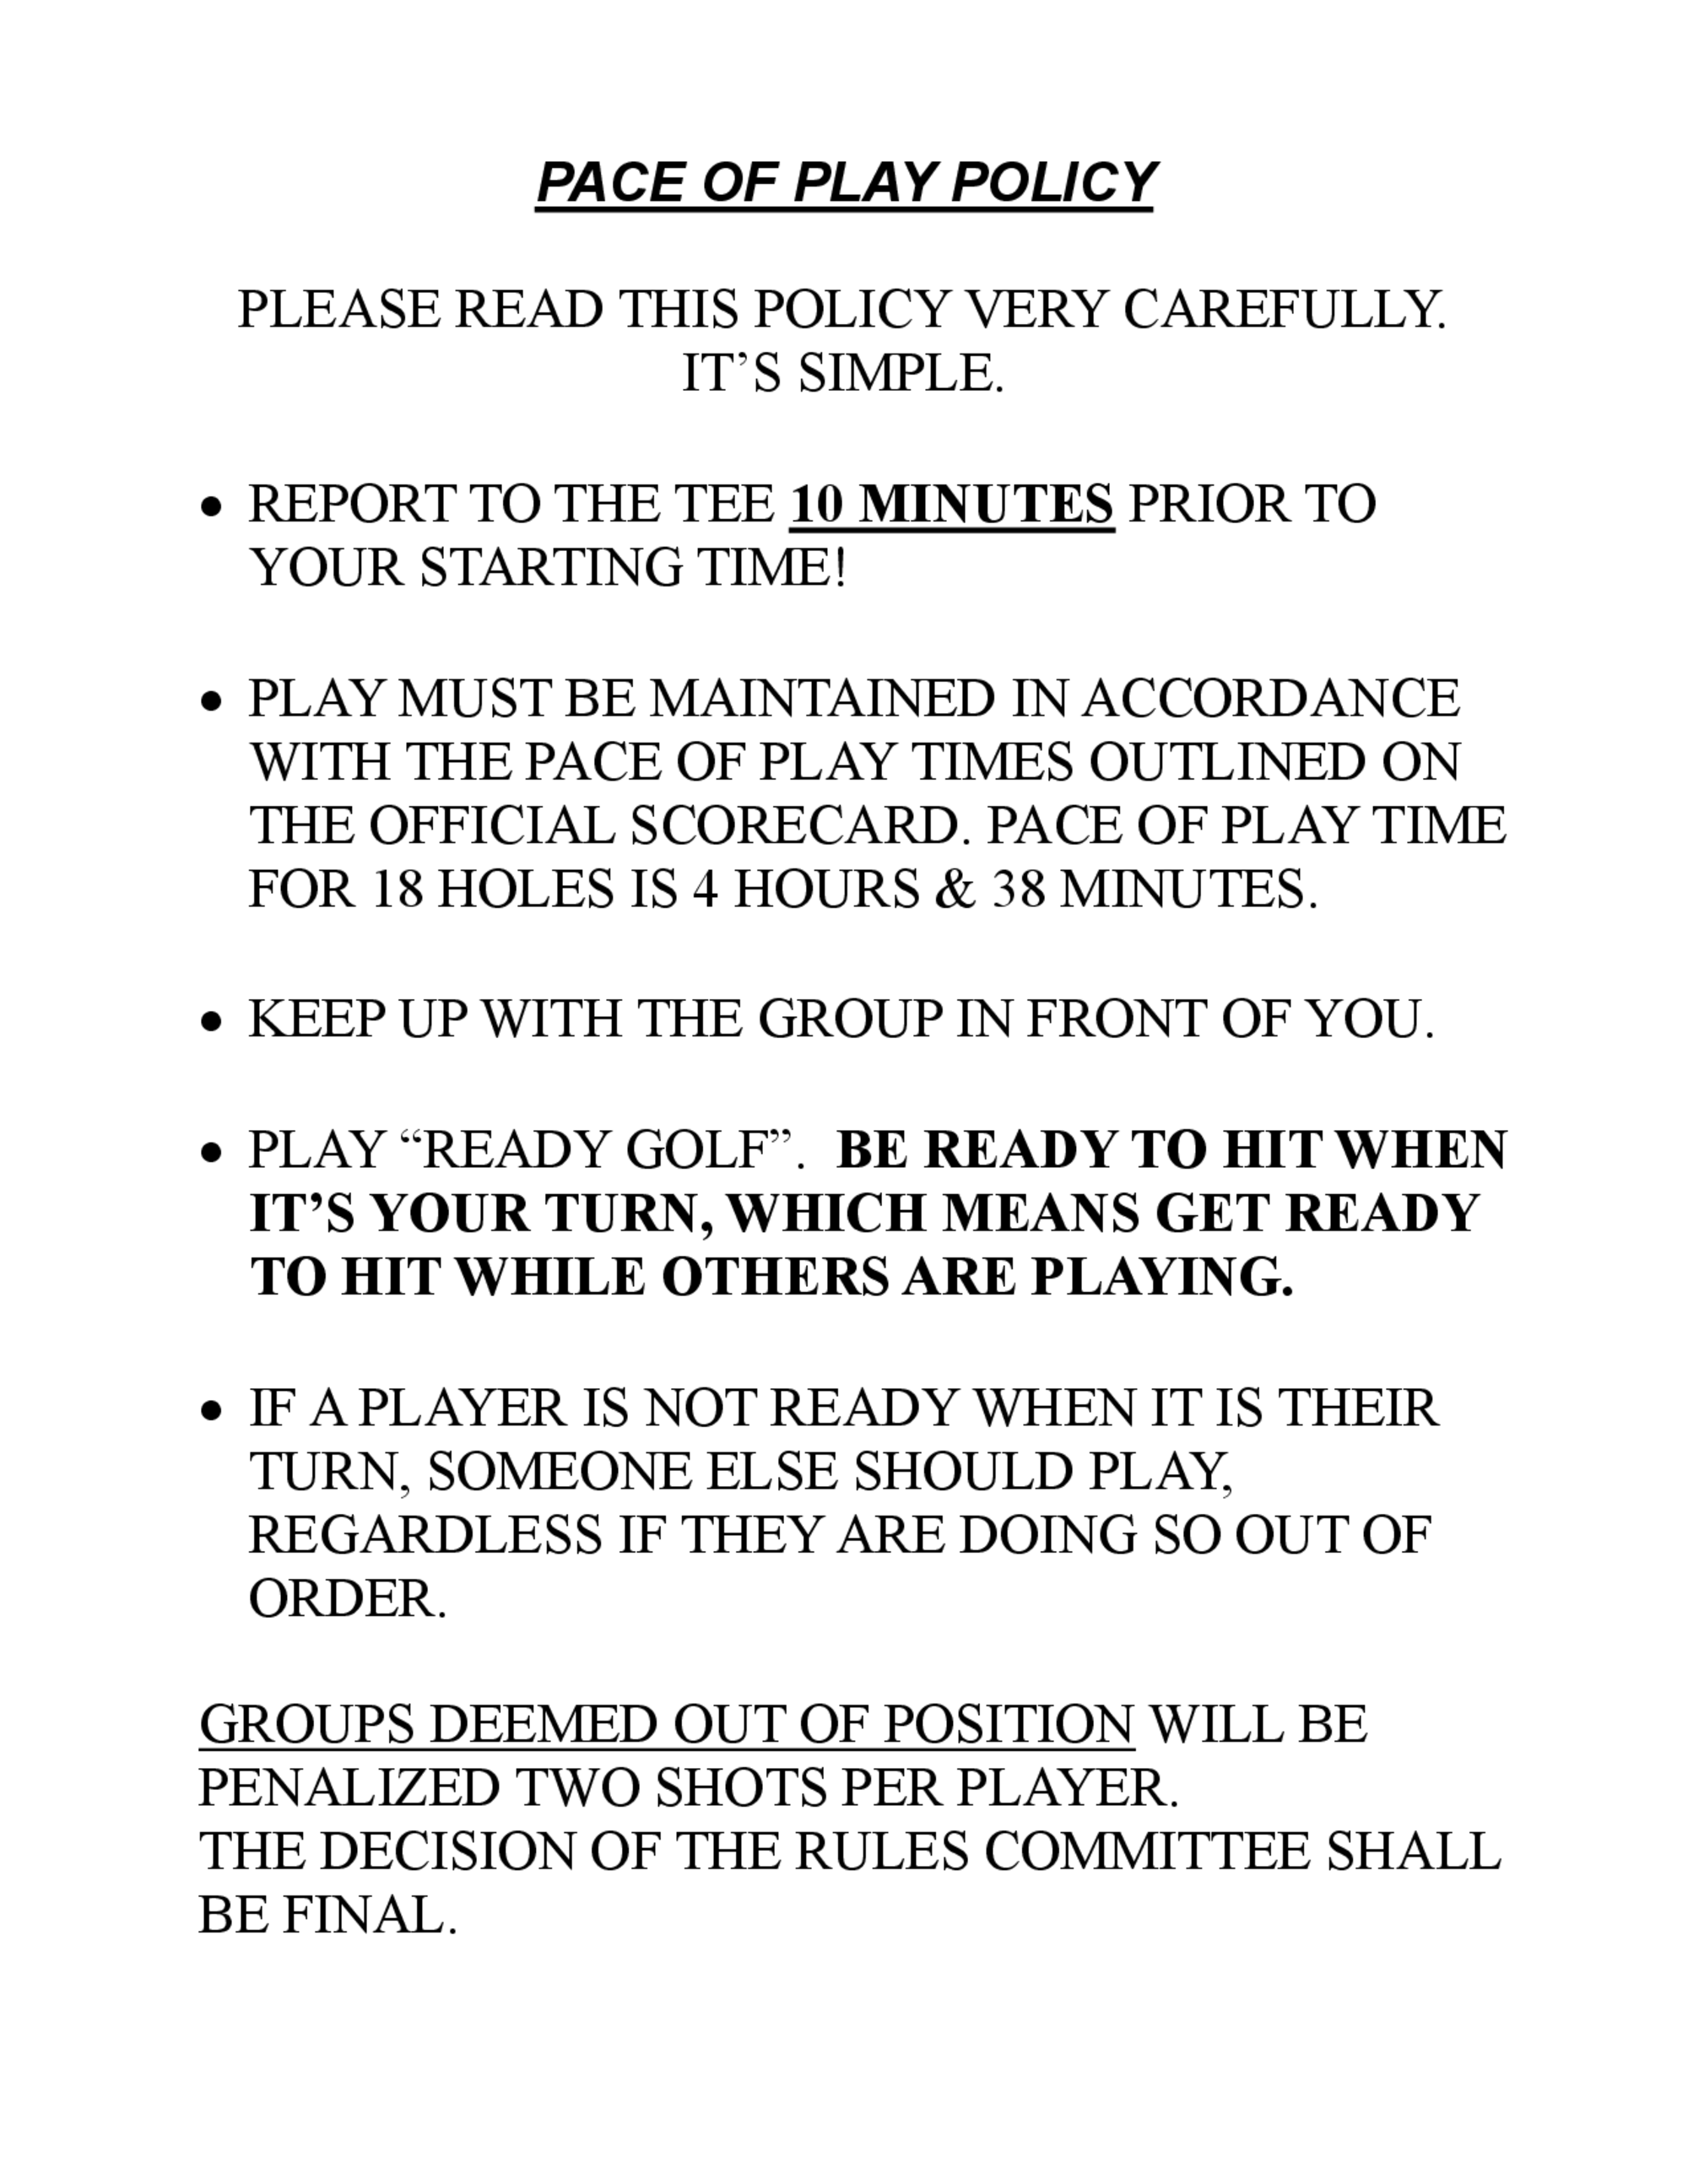 Pace of play policy 1